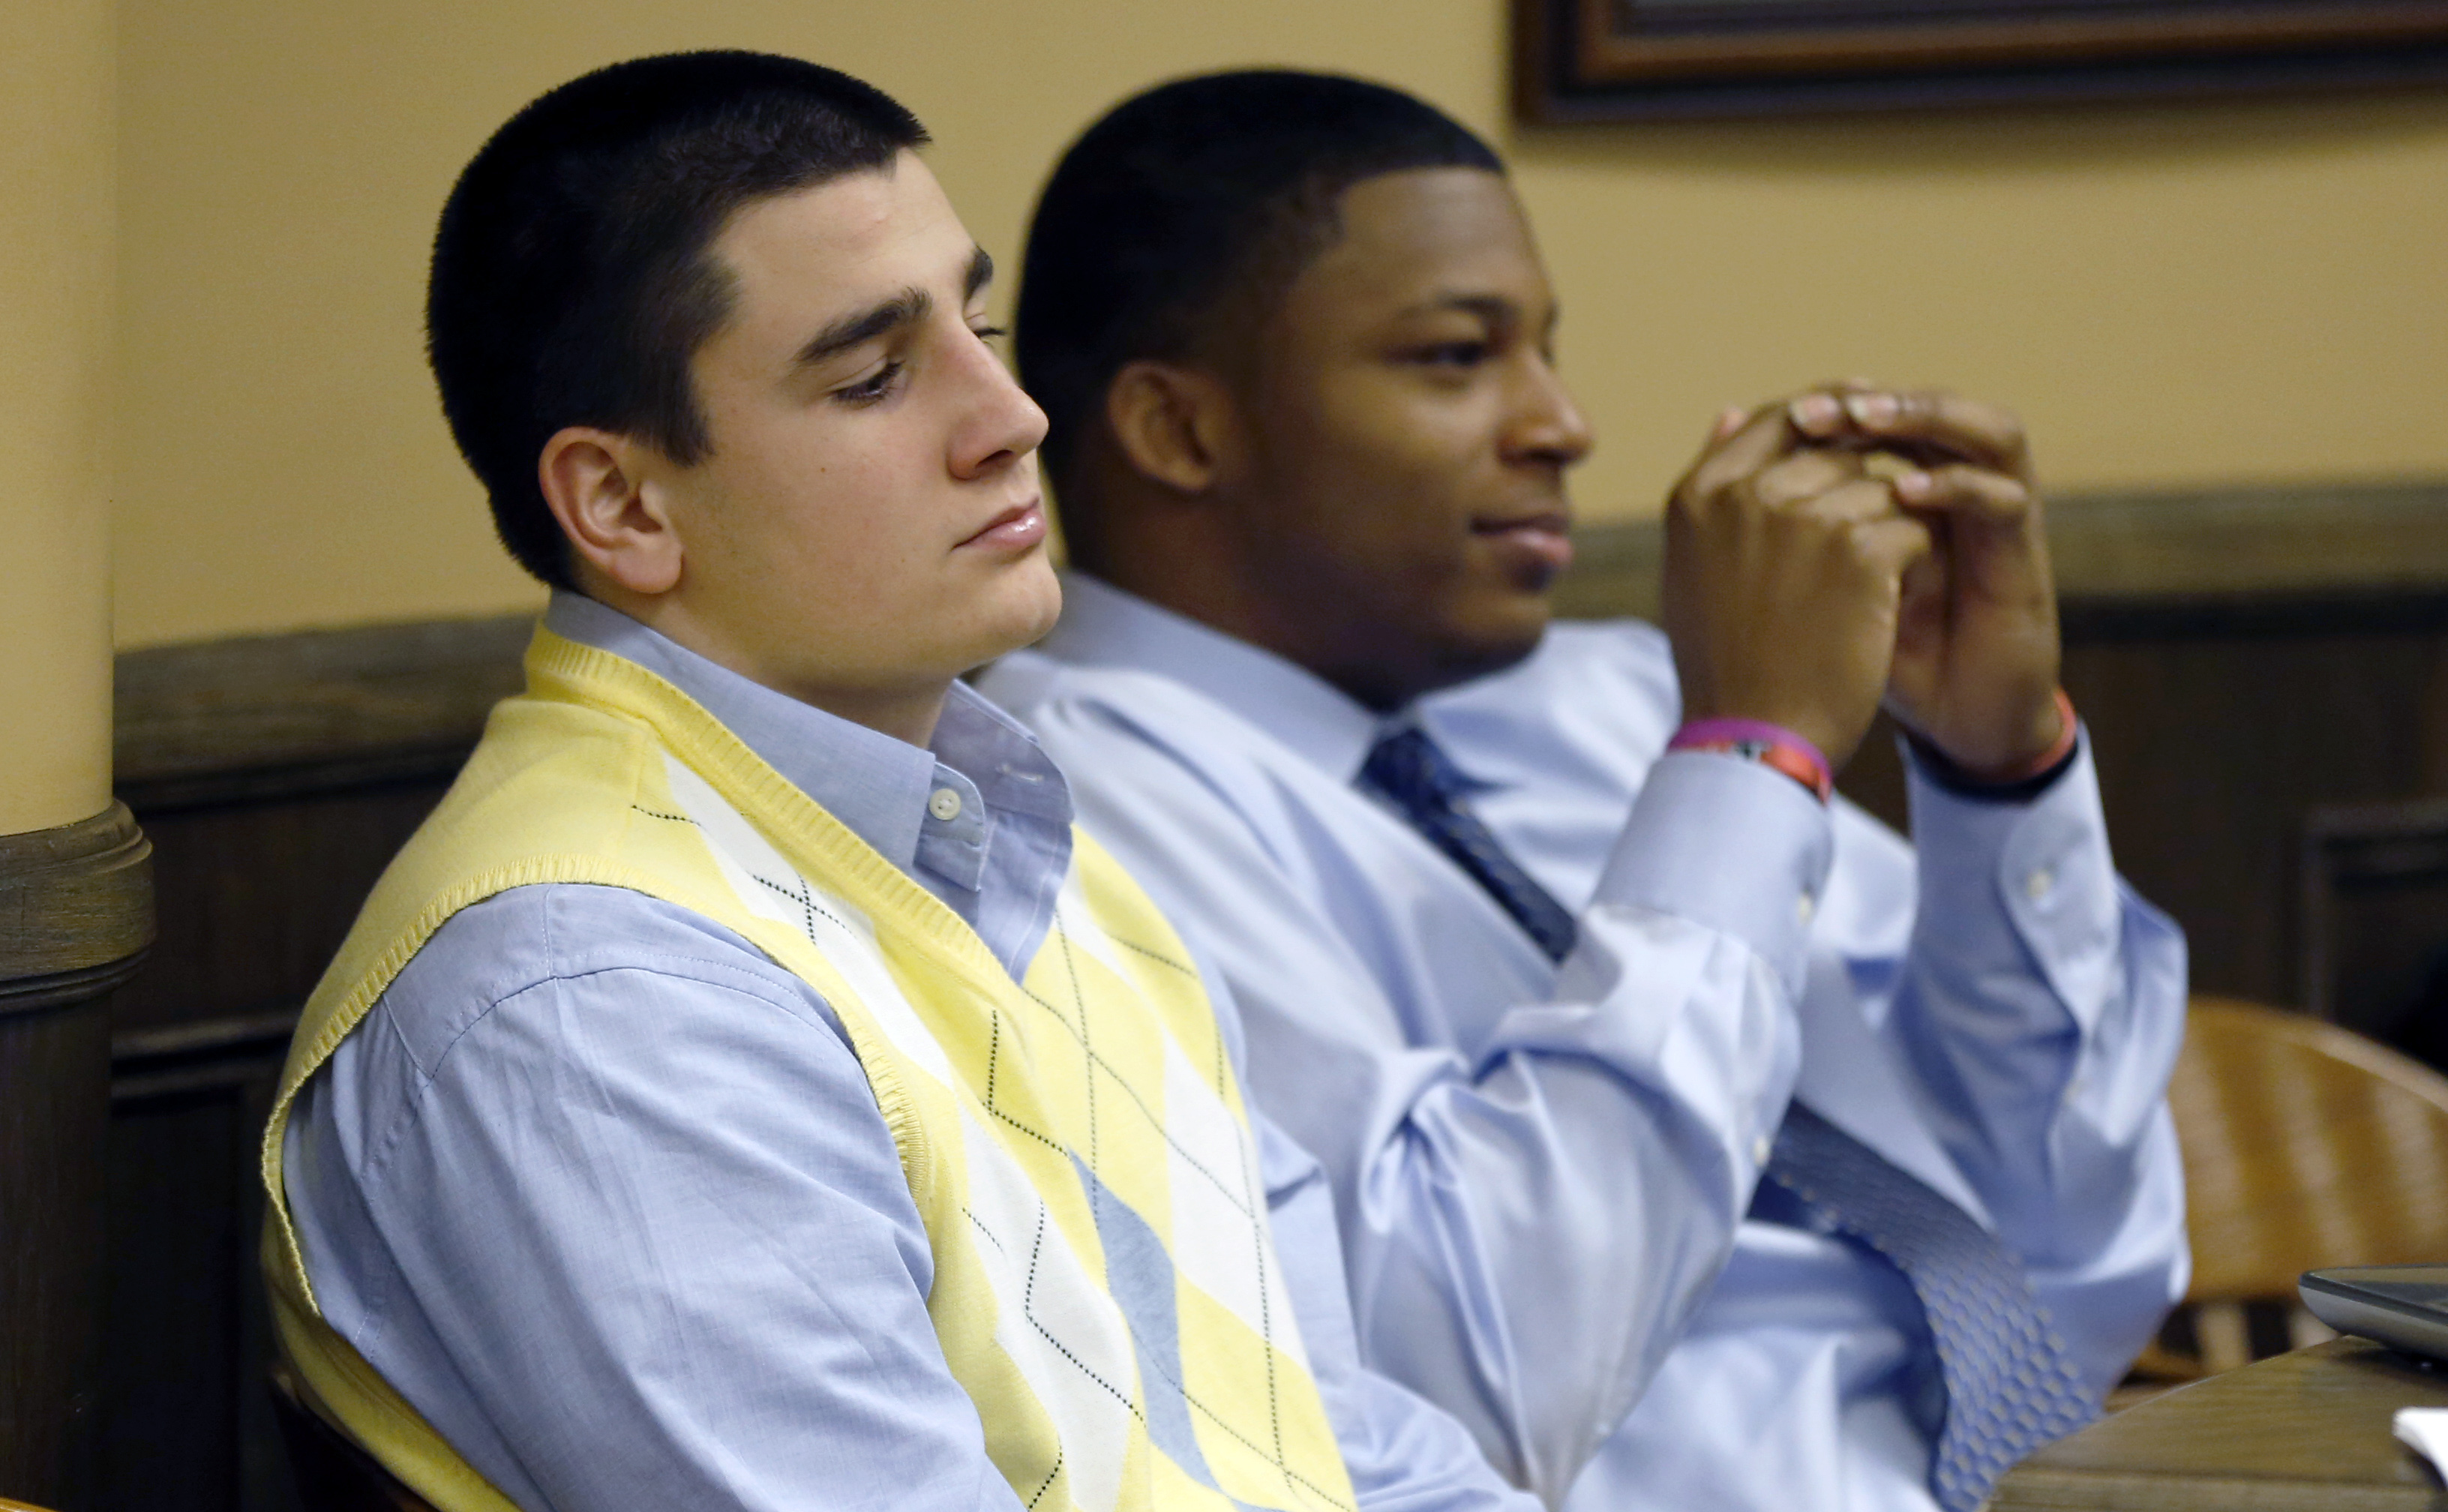 Trent Mays left, and Ma'lik Richmond are on trial for the alleged rape of a 16-year-old girl. (AP)